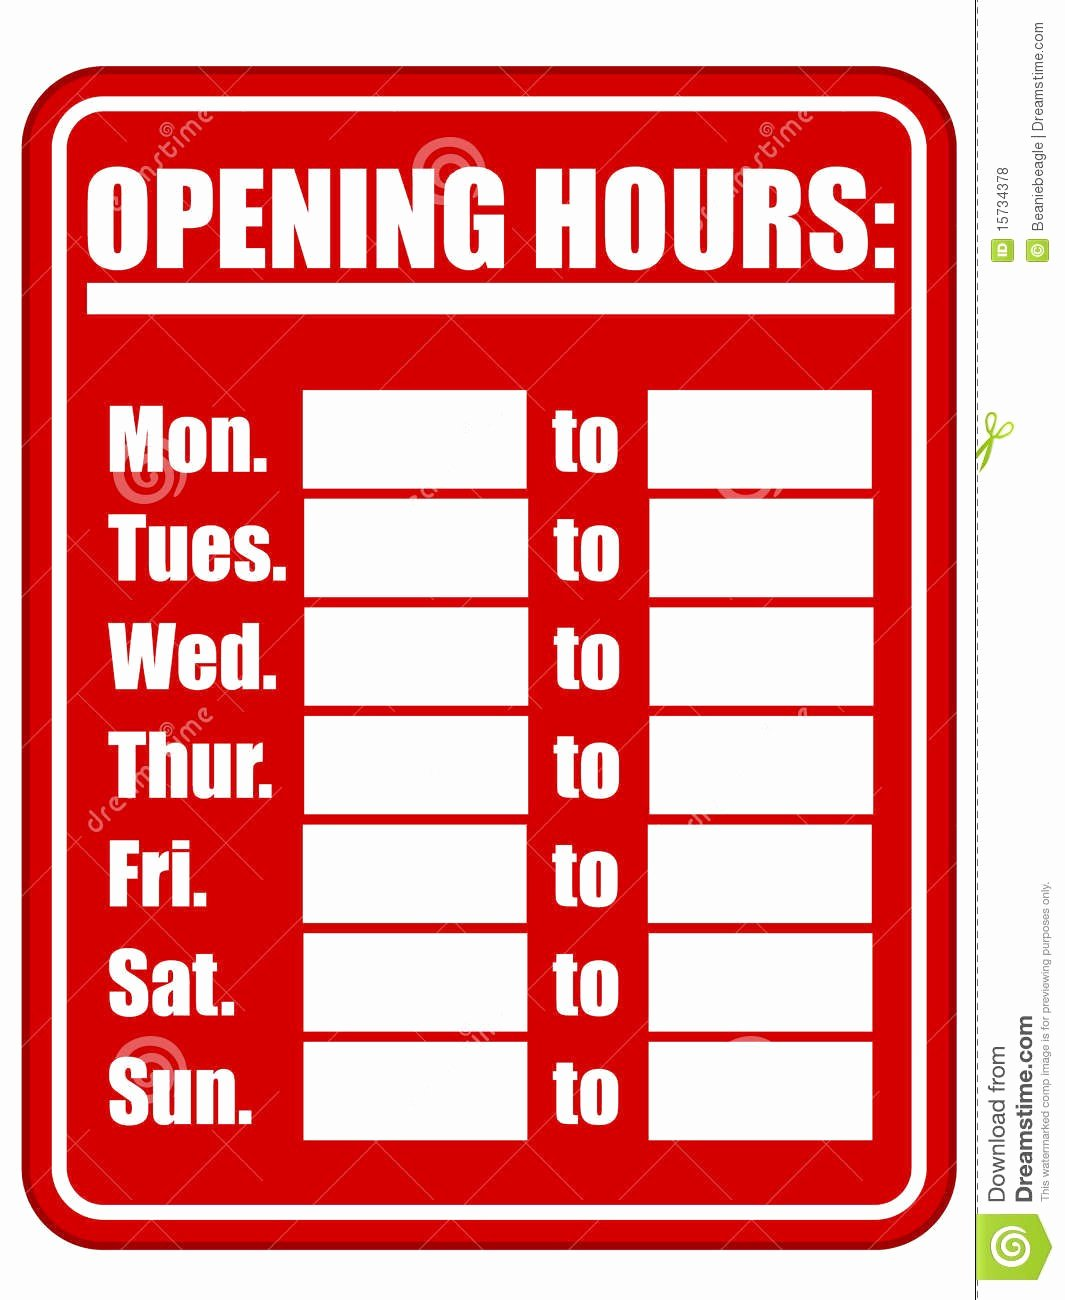 Store Hours Template Word Awesome Printable Business Hours Sign Template Tulsalutheran